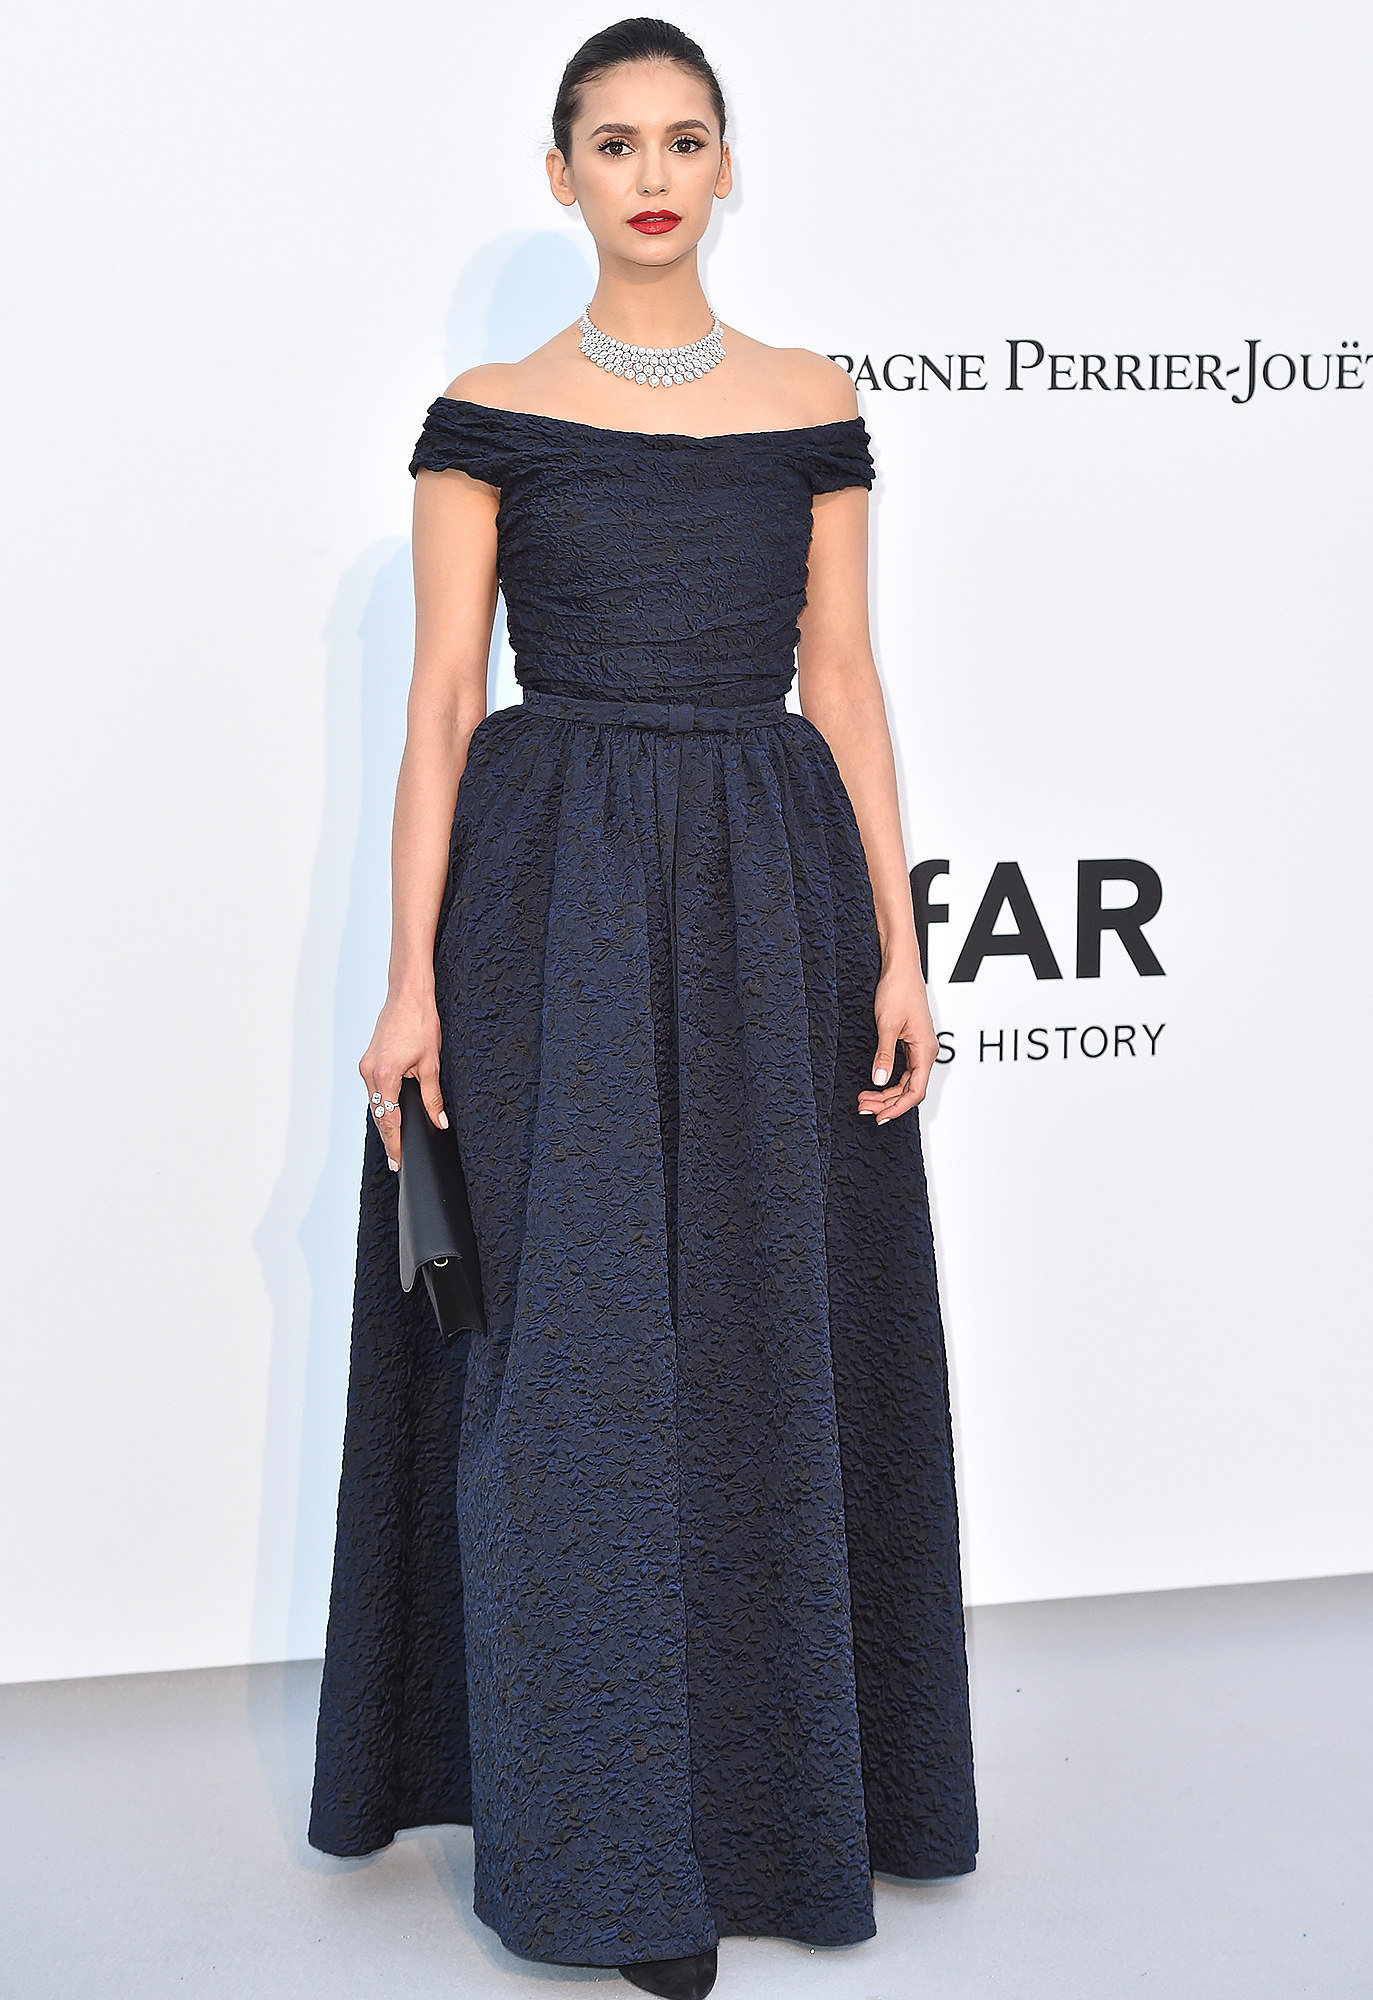 Nina-Dobrev - A darling in Dior at the amfAR Cannes Gala on Thursday, May 23, the brunette beauty accessories with blinding bling and a bright red pout.